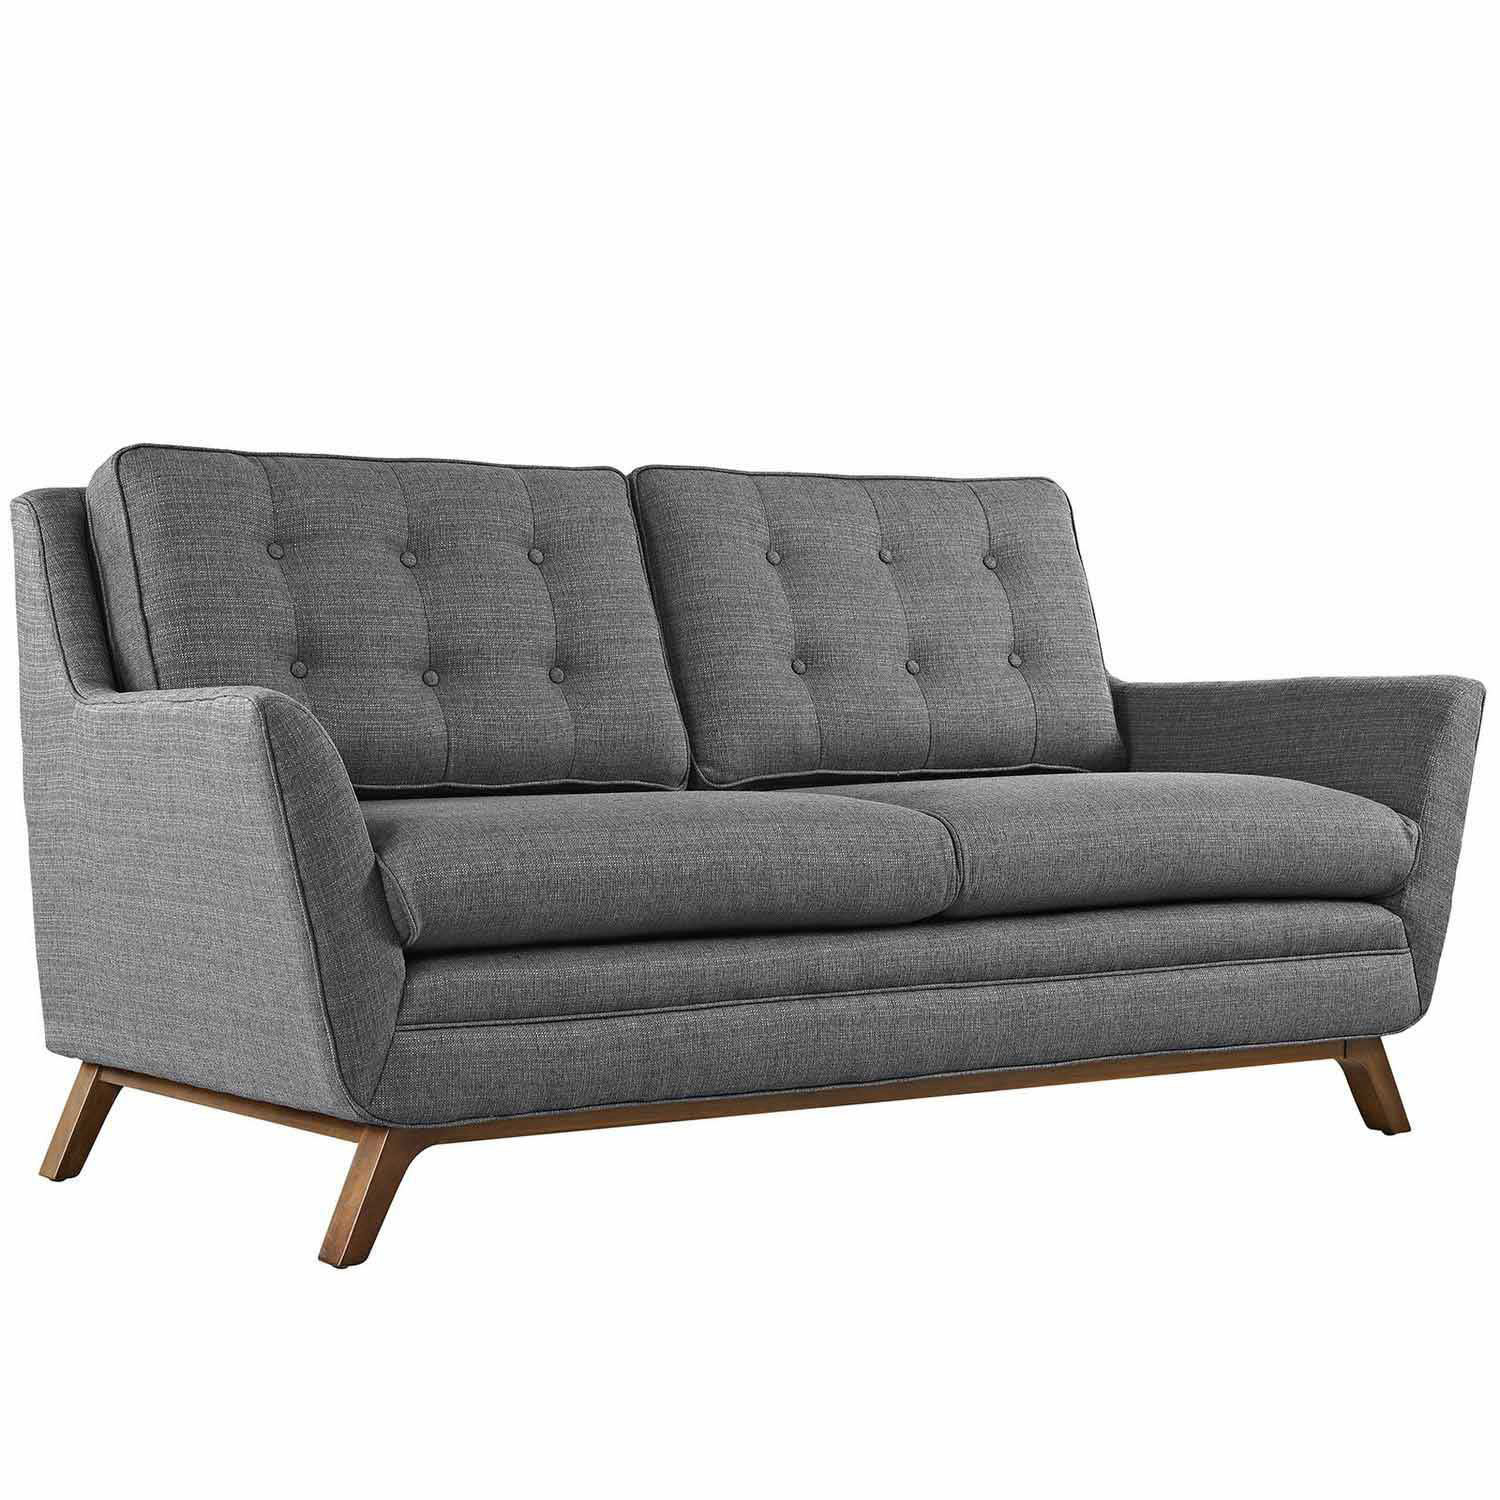 Modway Beguile Fabric Loveseat - Gray